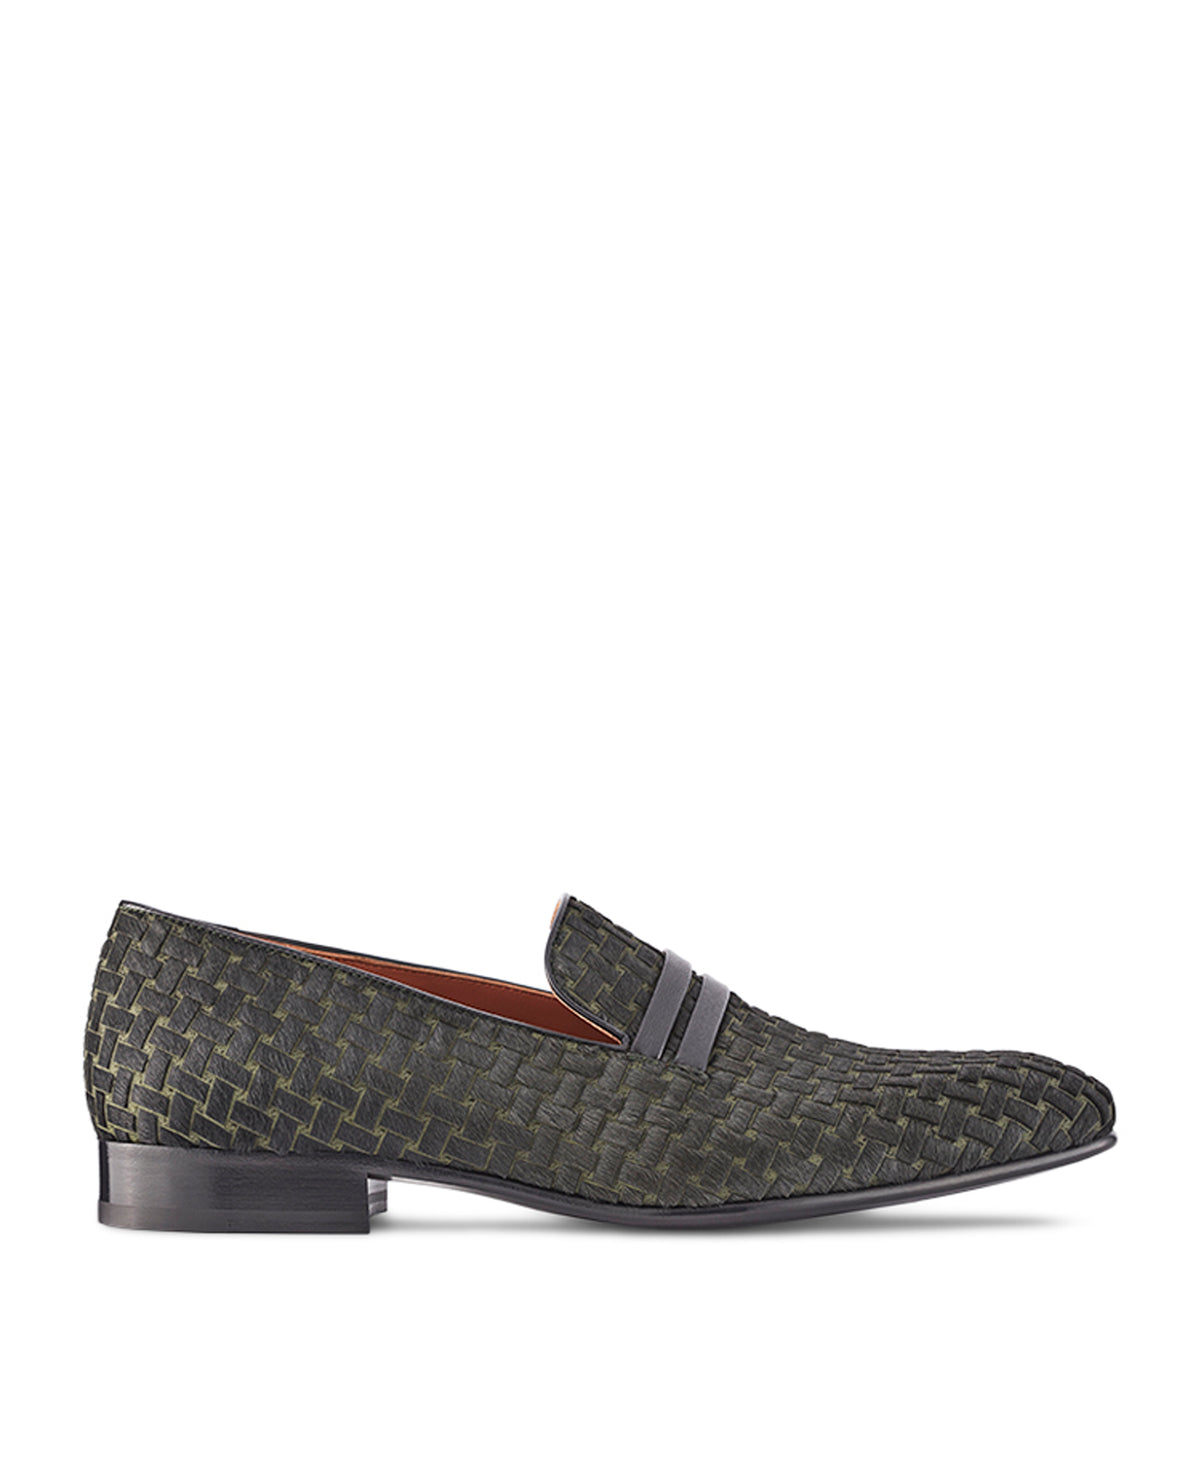 MILES - Embossed Calf Hair Loafers